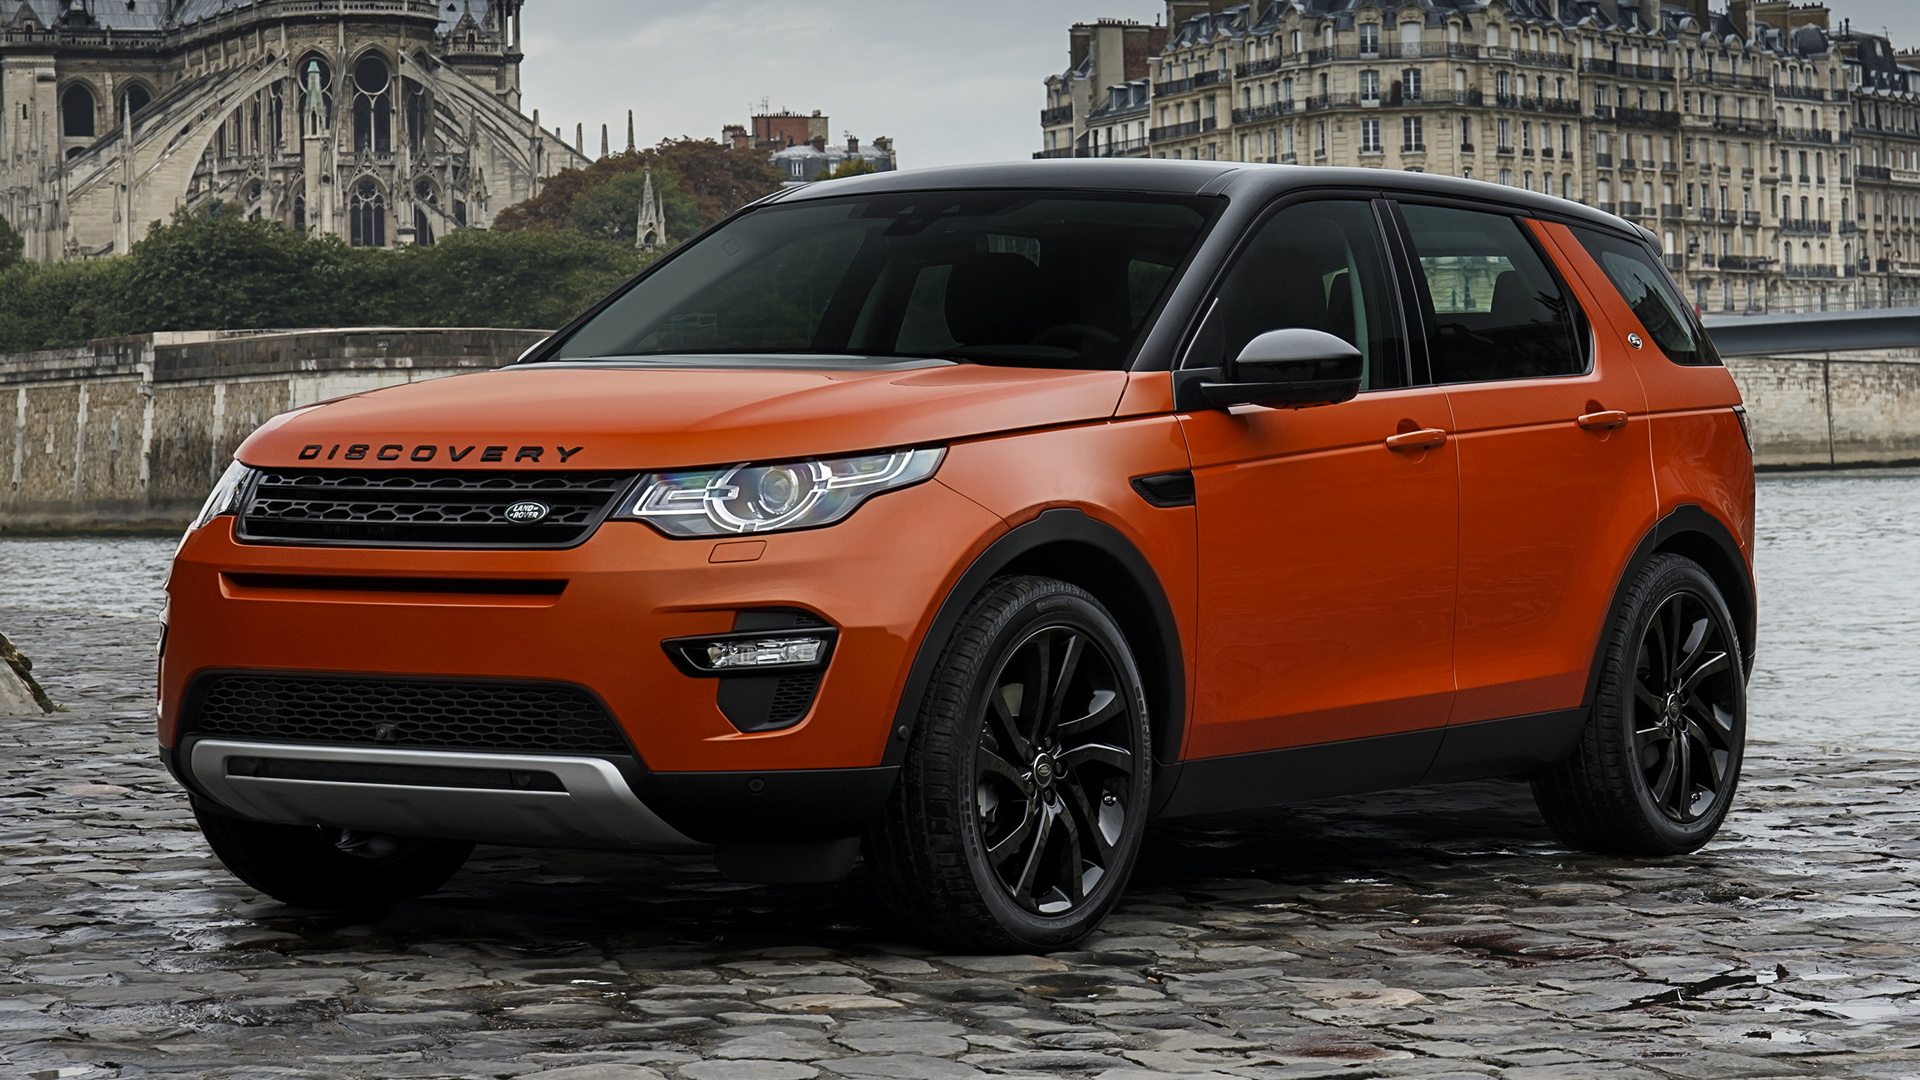 2015 Land Rover Discovery Sport HSE Luxury Black Design ...